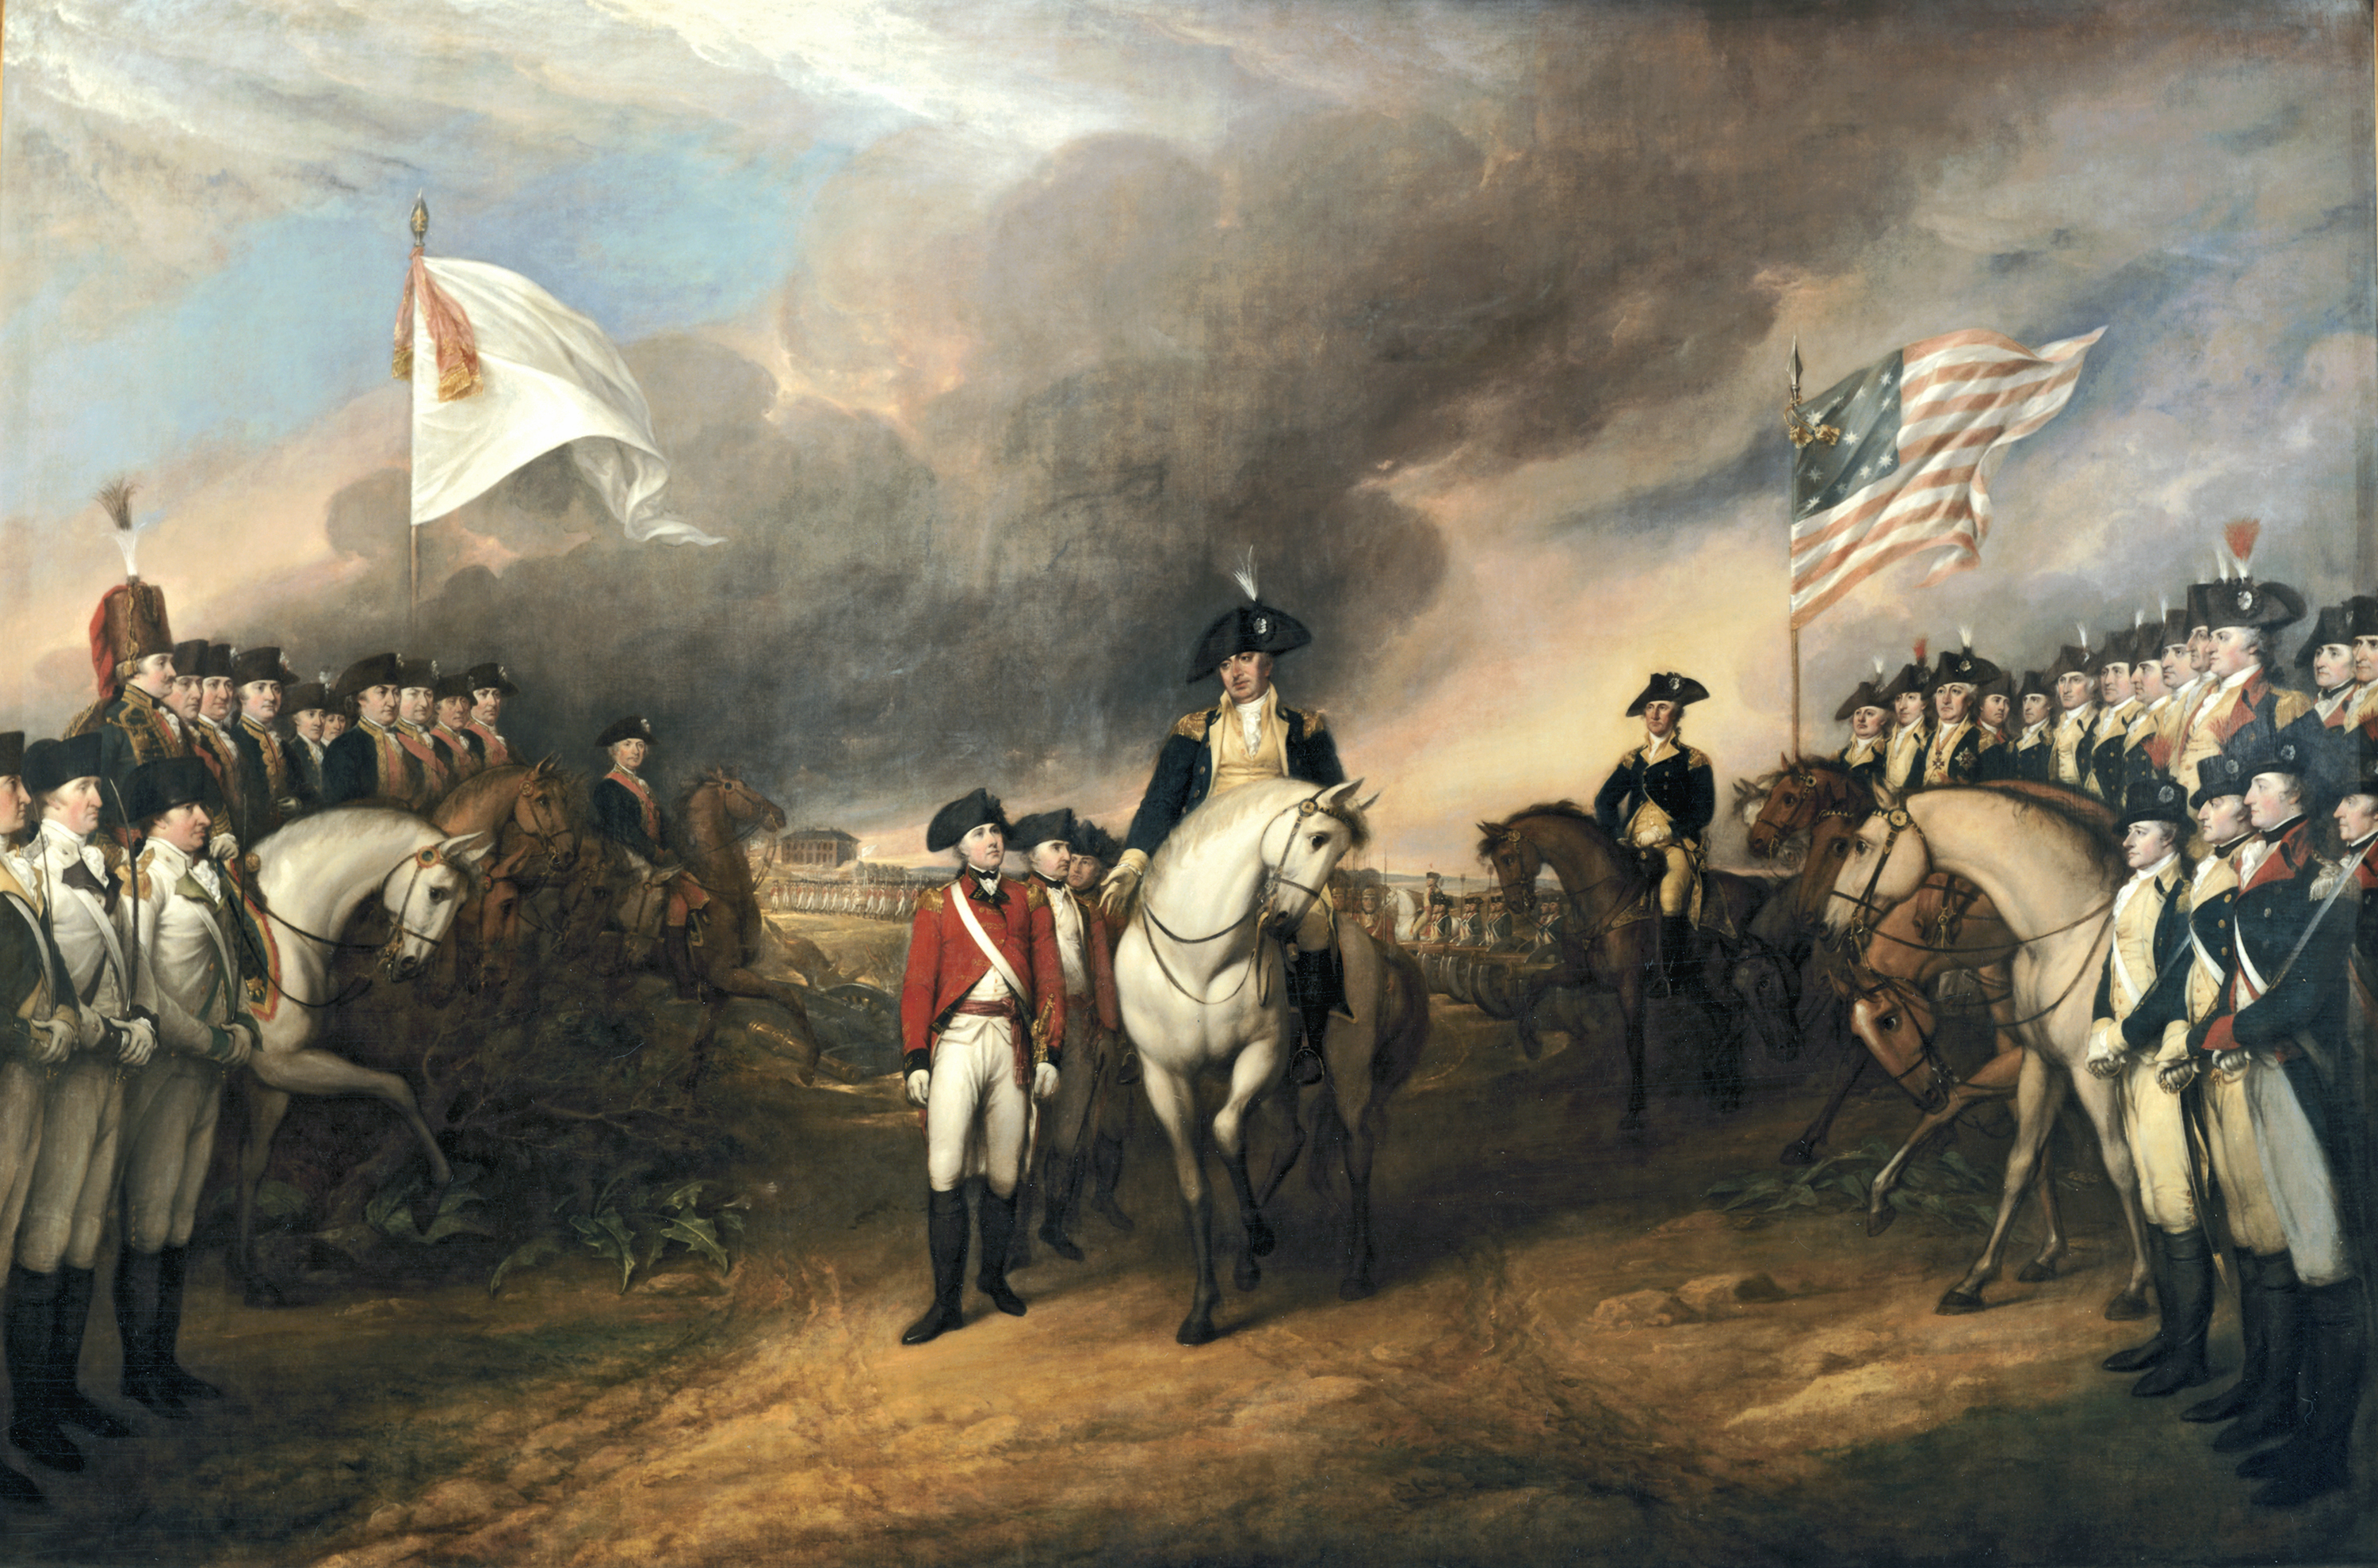 http://upload.wikimedia.org/wikipedia/commons/b/b8/Surrender_of_Lord_Cornwallis.jpg